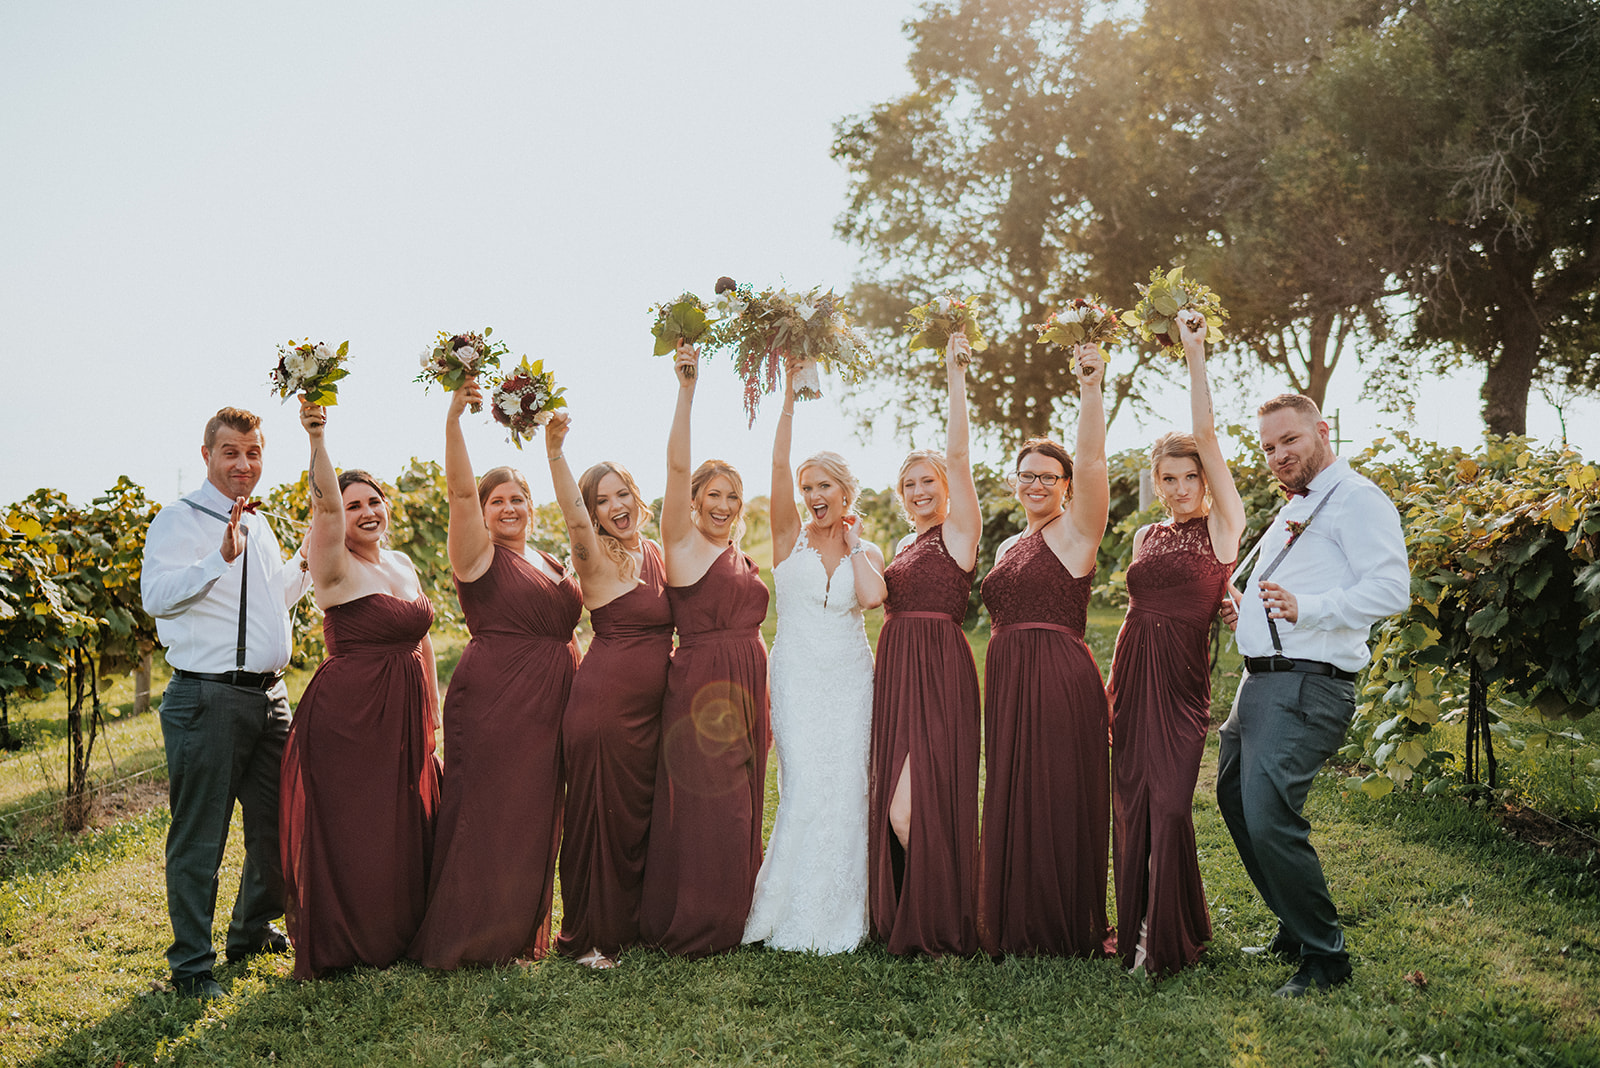 overthevineswisconsinwedding_0850.jpg